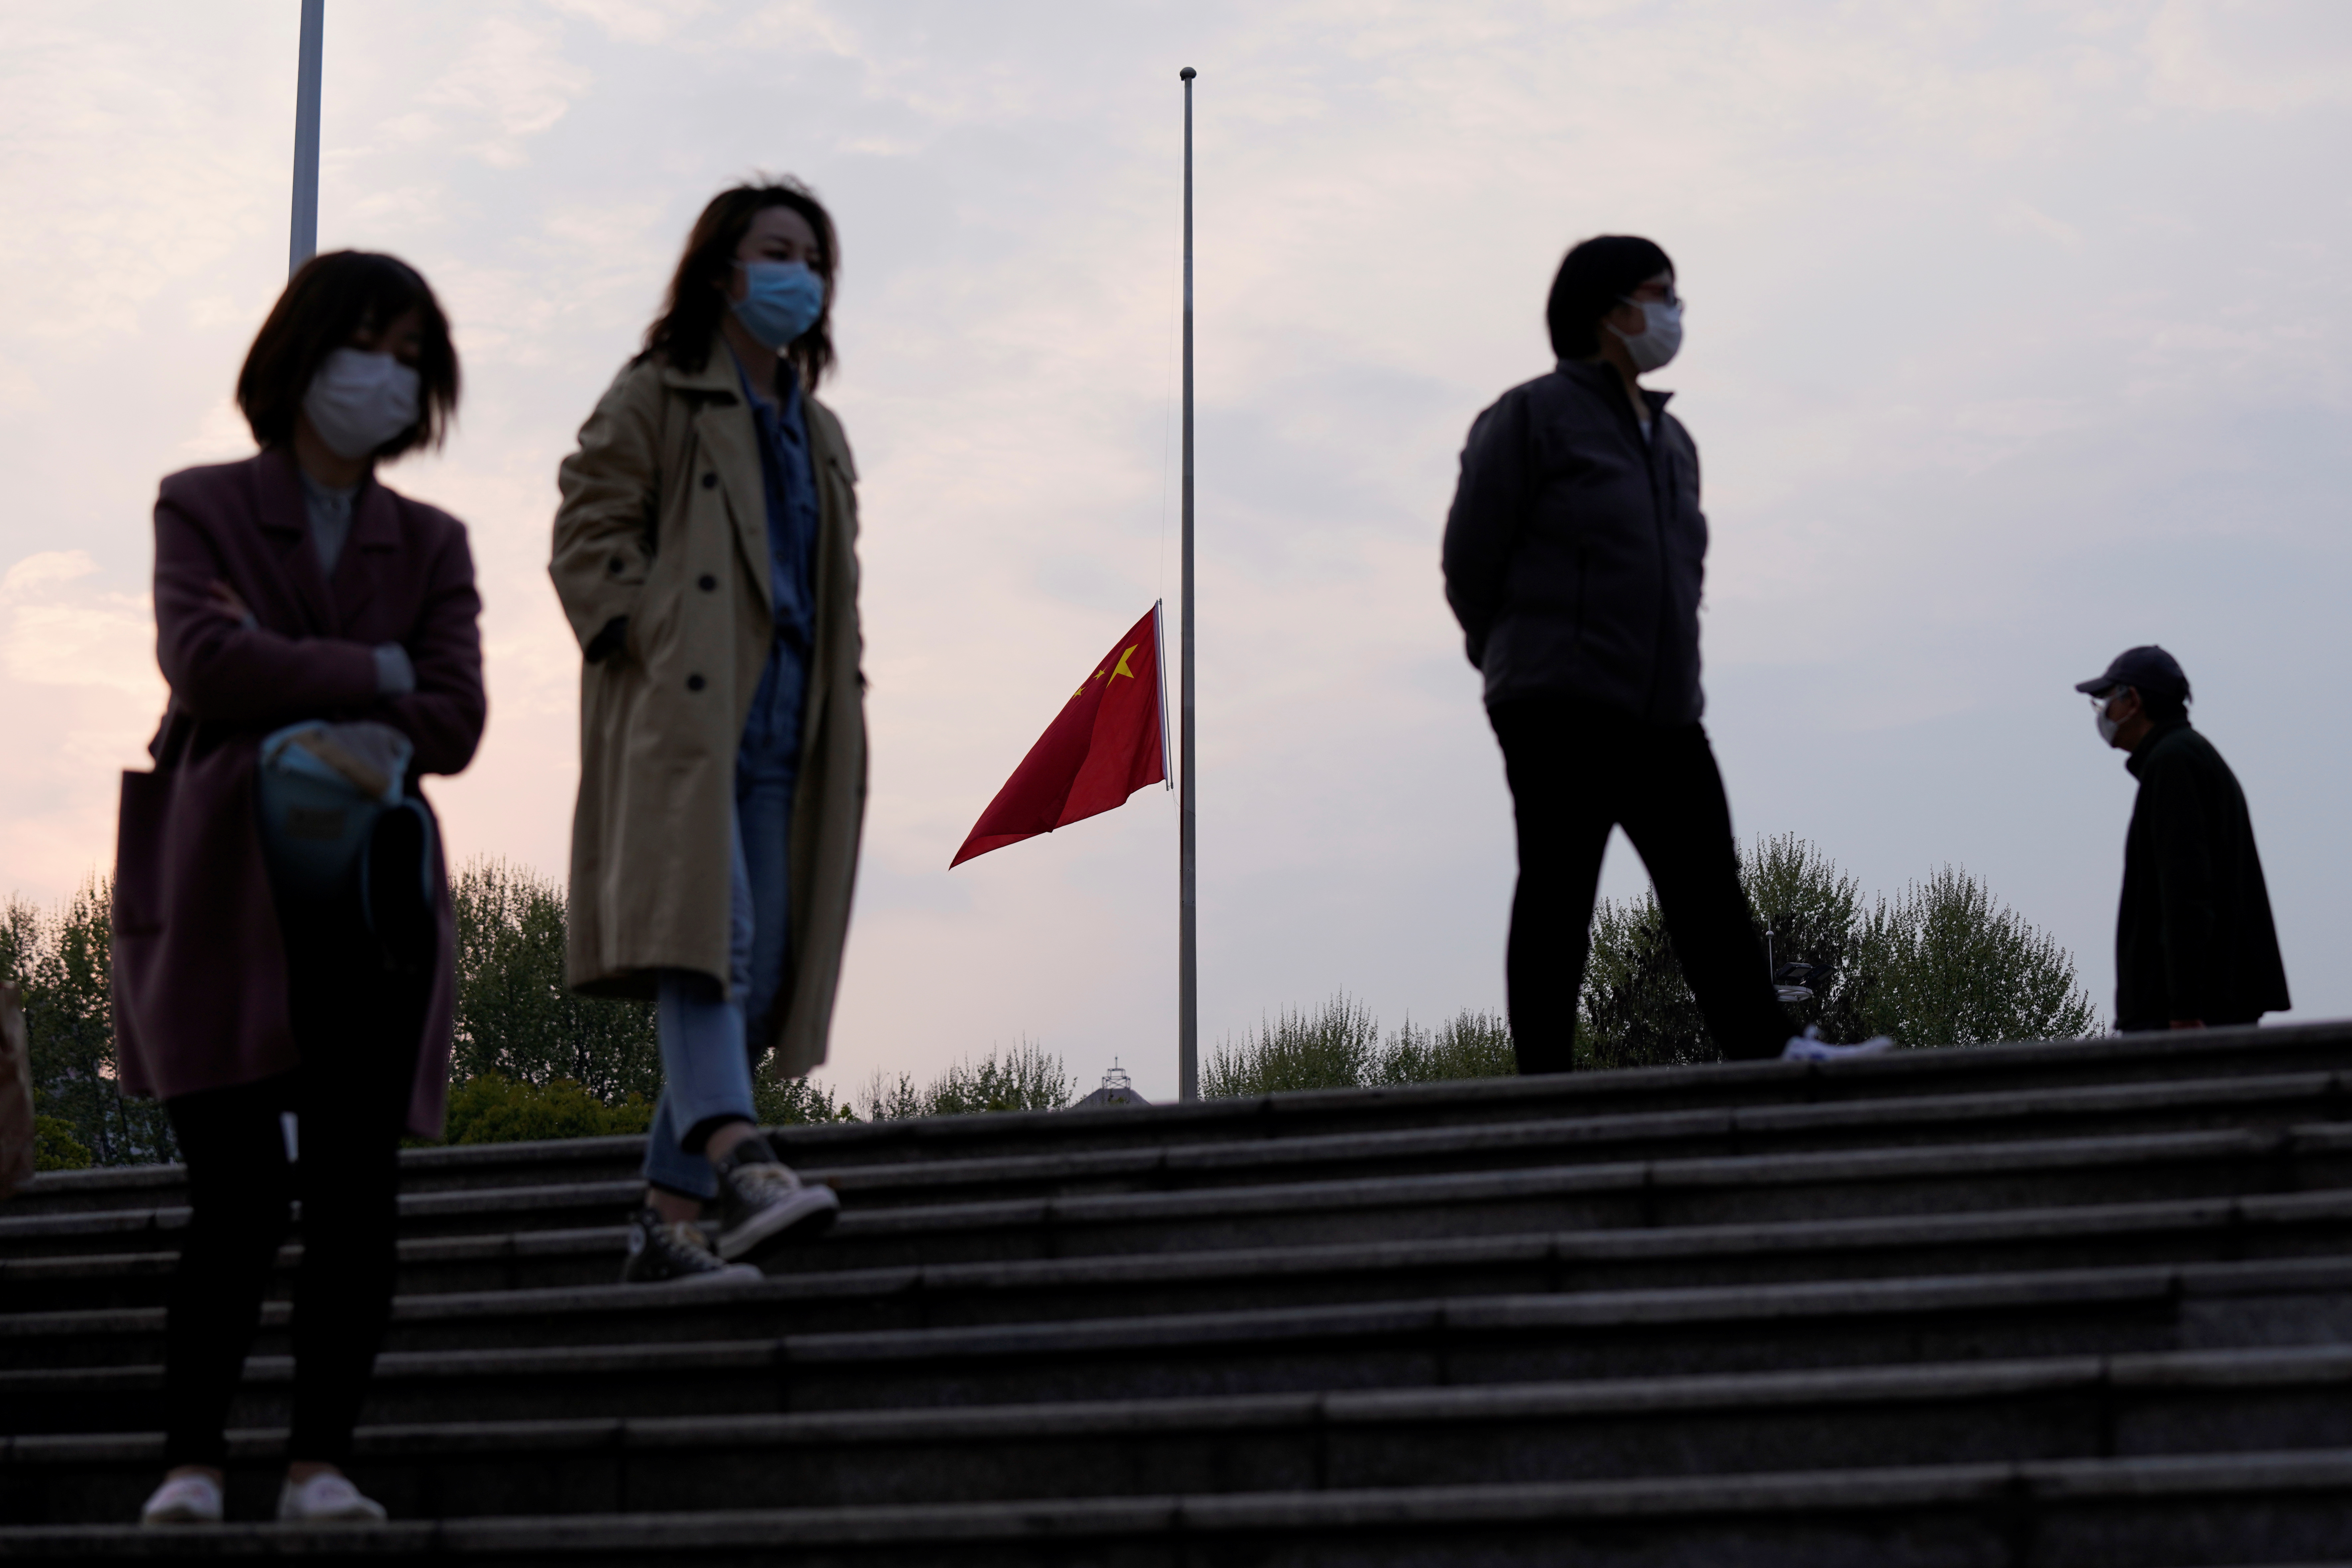 People wearing face masks walk past the Chinese national flag flying at half mast in Wuhan, Hubei province, as China holds a national mourning for those who died of the coronavirus disease (COVID-19), on the Qingming tomb-sweeping festival, April 4, 2020. Photo: Reuters